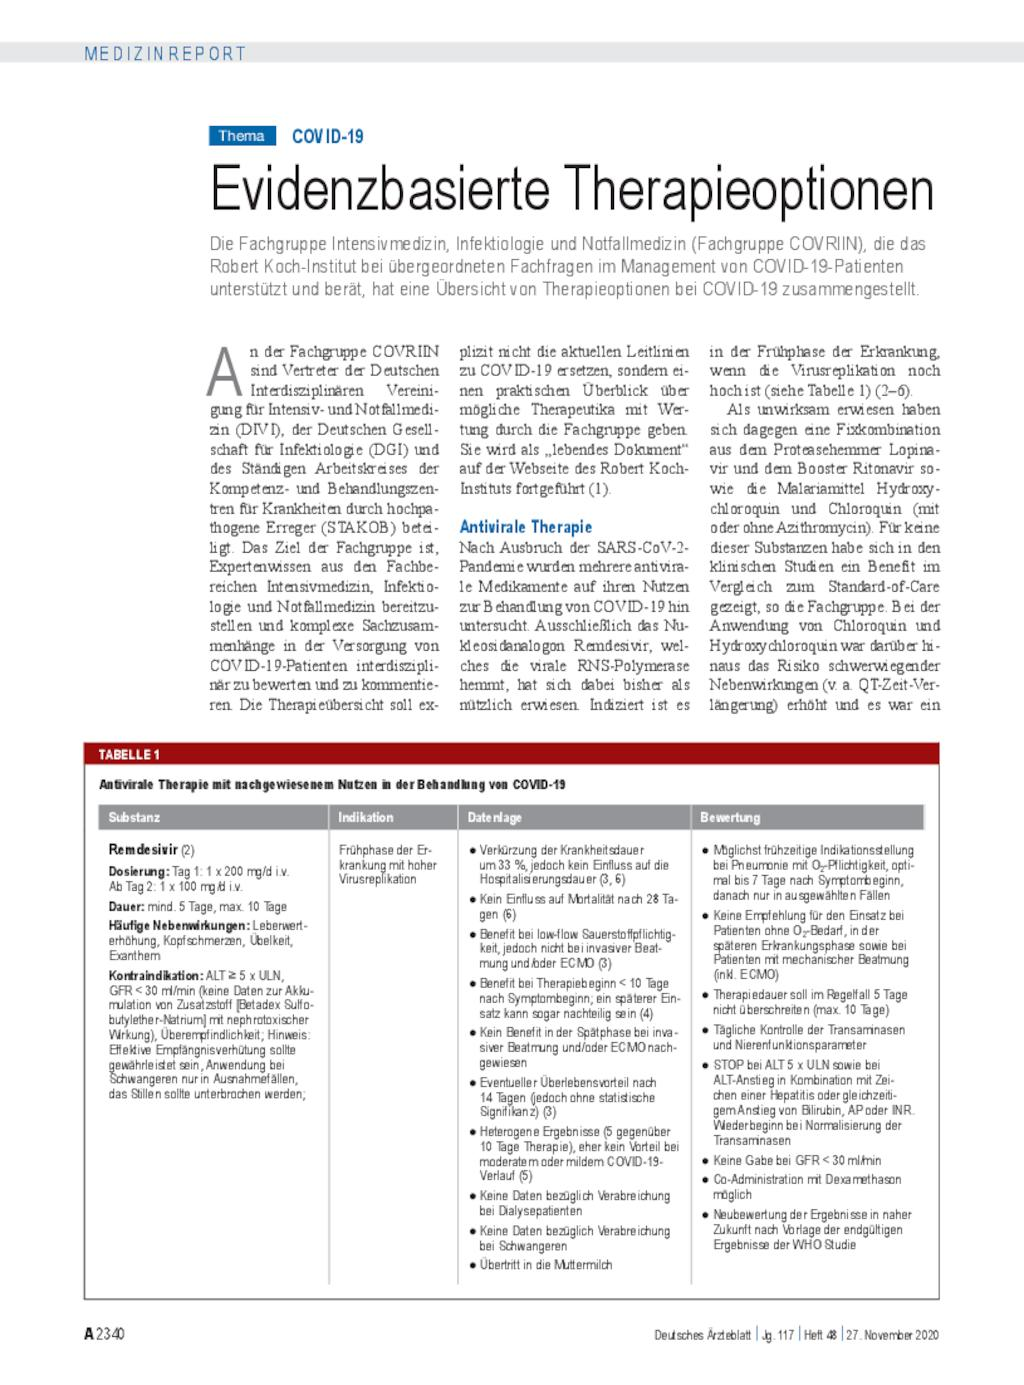 COVID-19: Evidenzbasierte Therapieoptionen